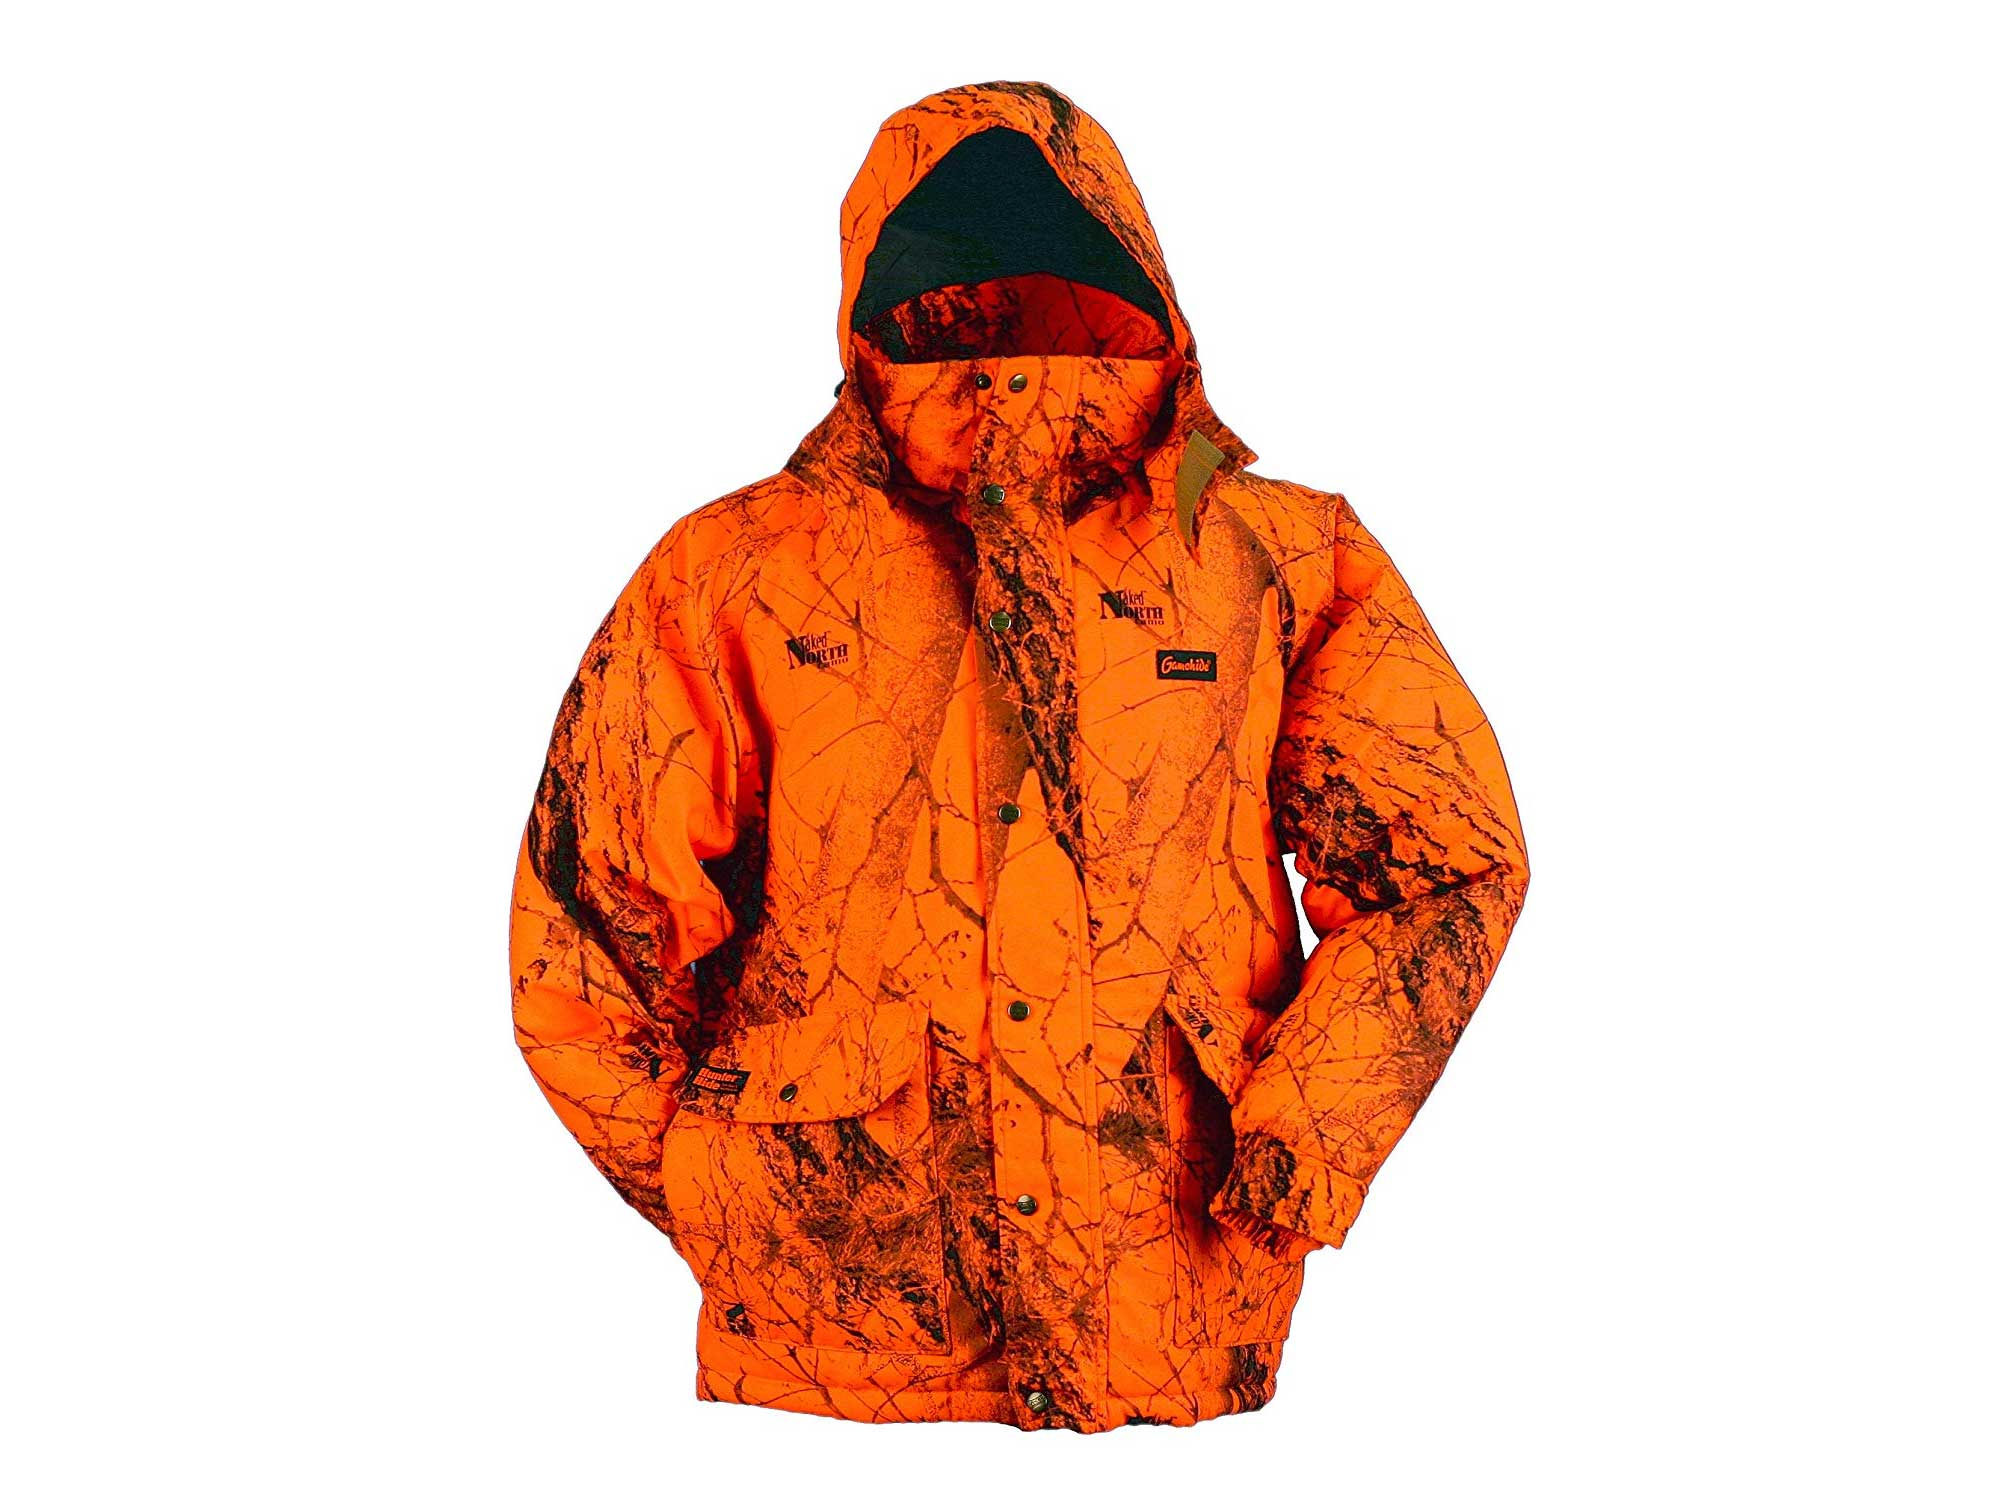 Three Things To Consider Before Buying A Hunter Orange Jacket